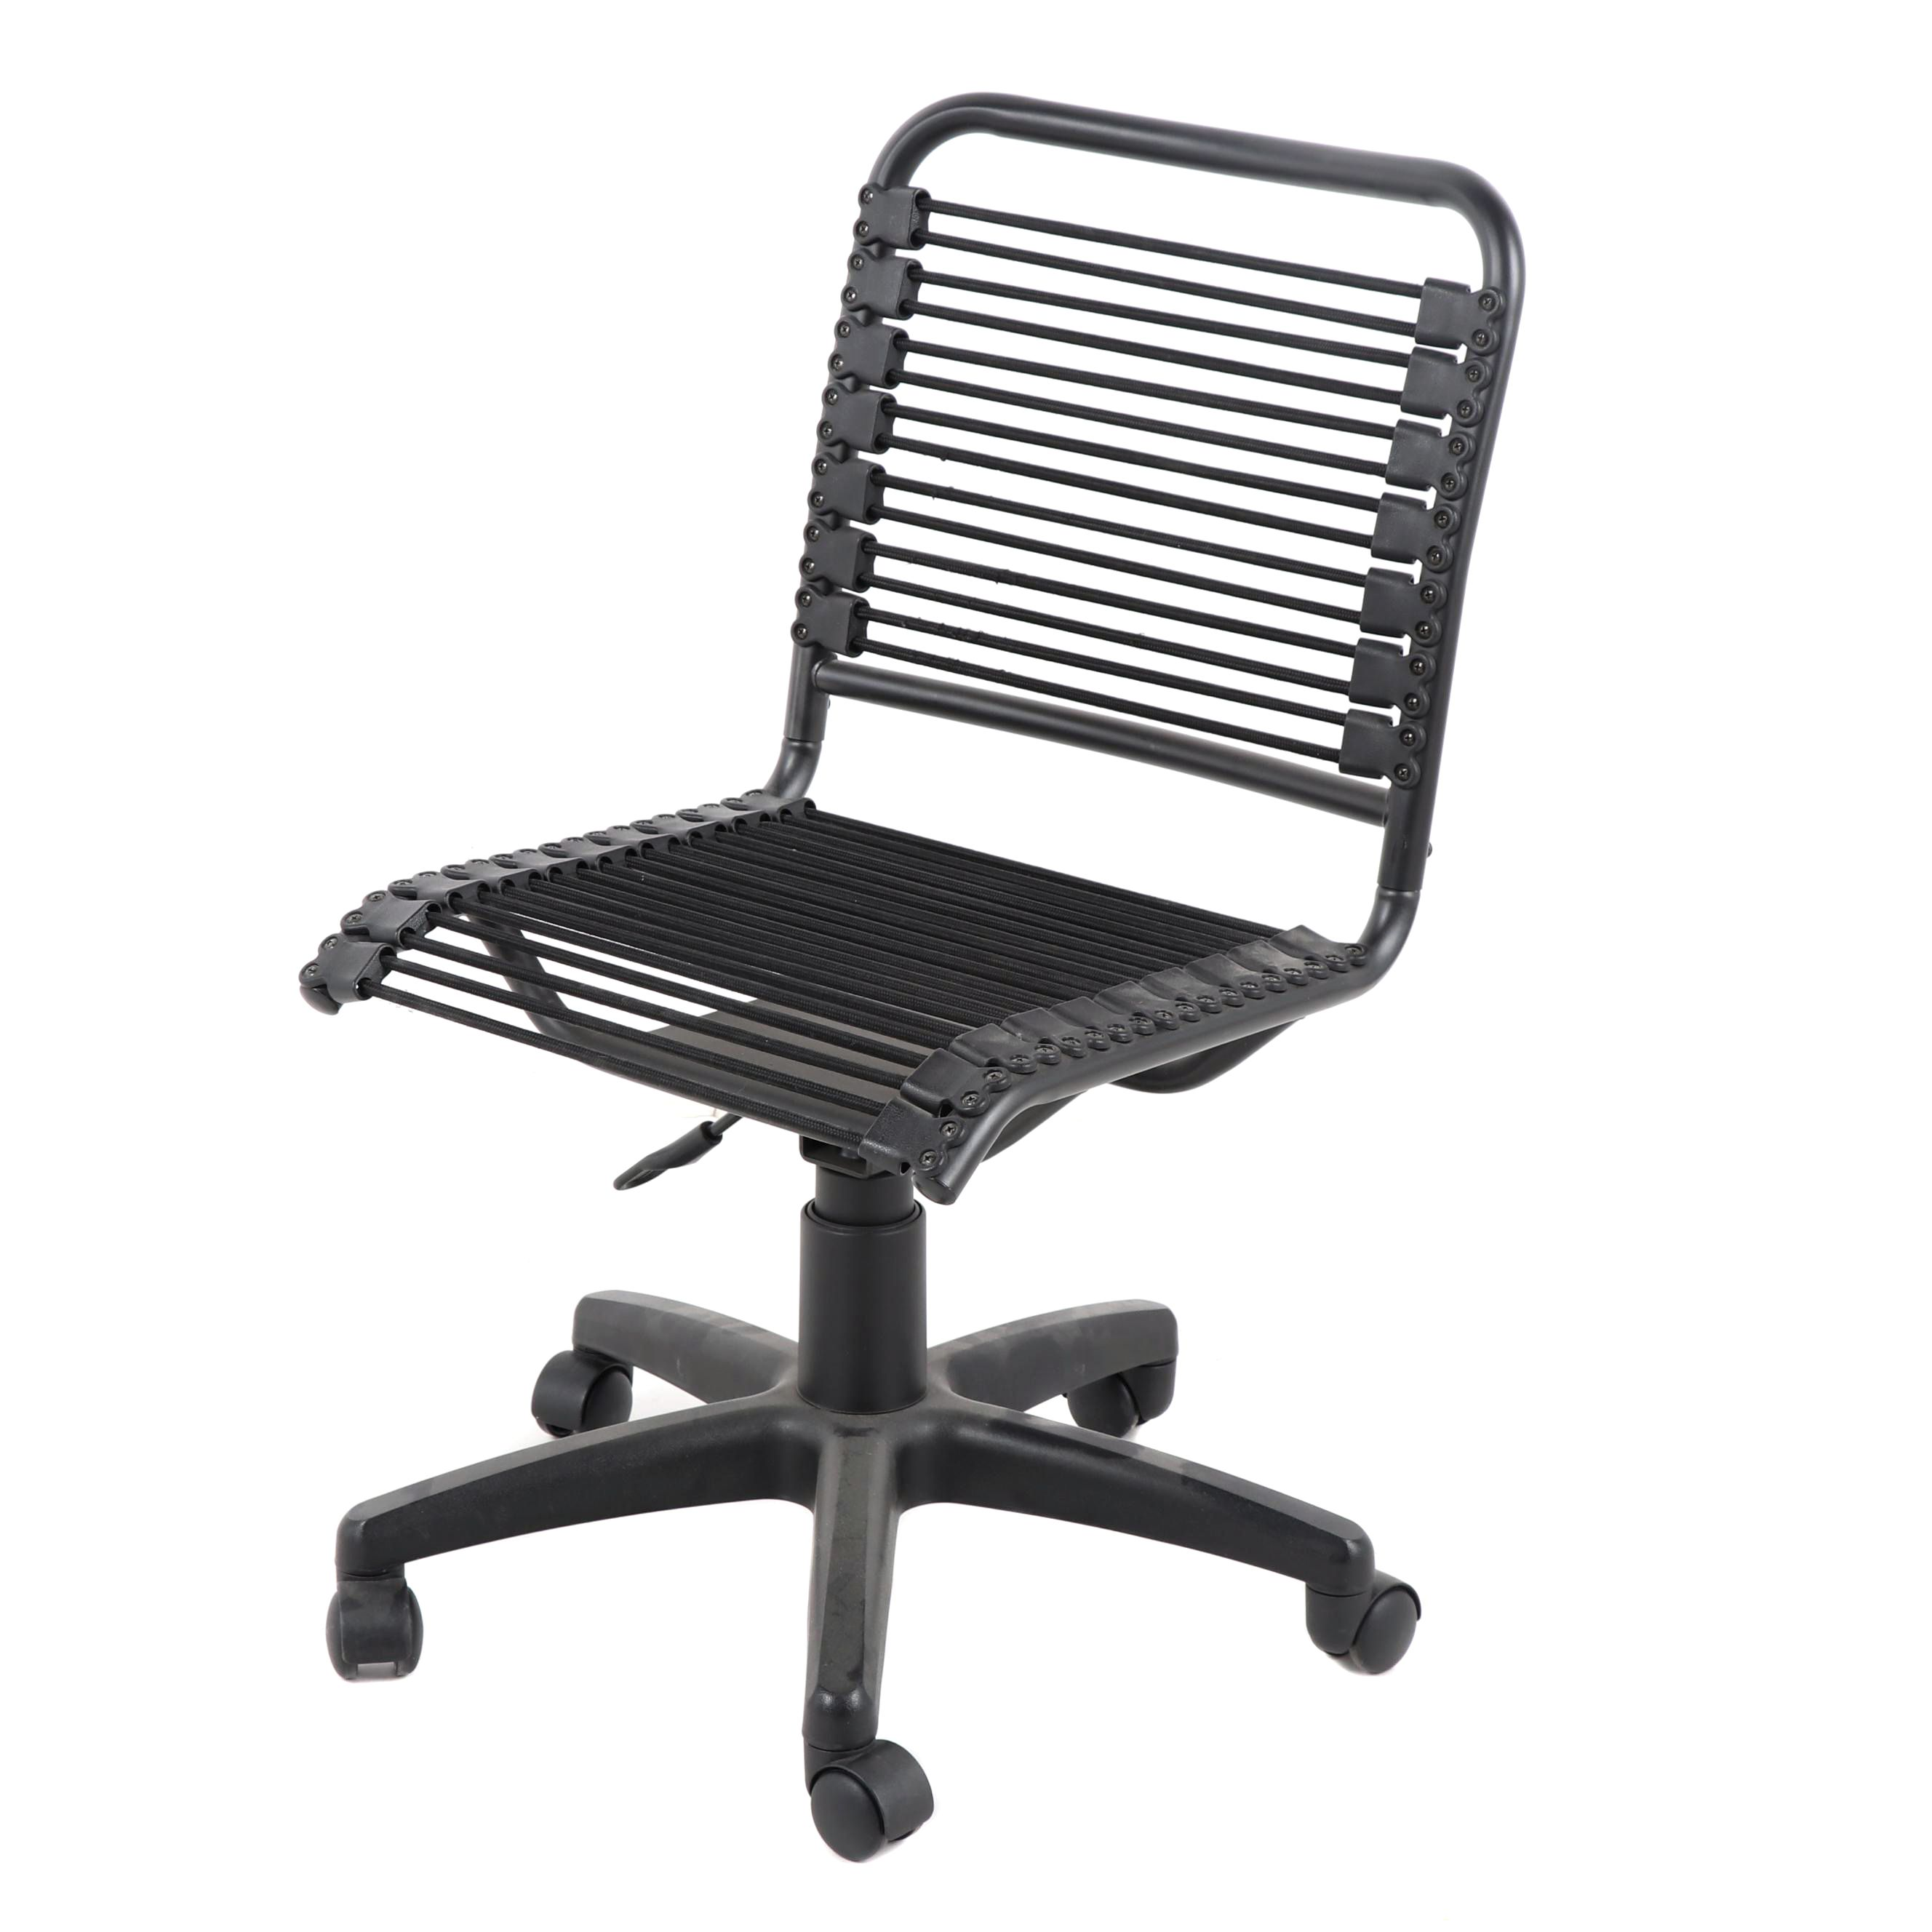 bungee office chairs chair design templates on casters 21st century ebth